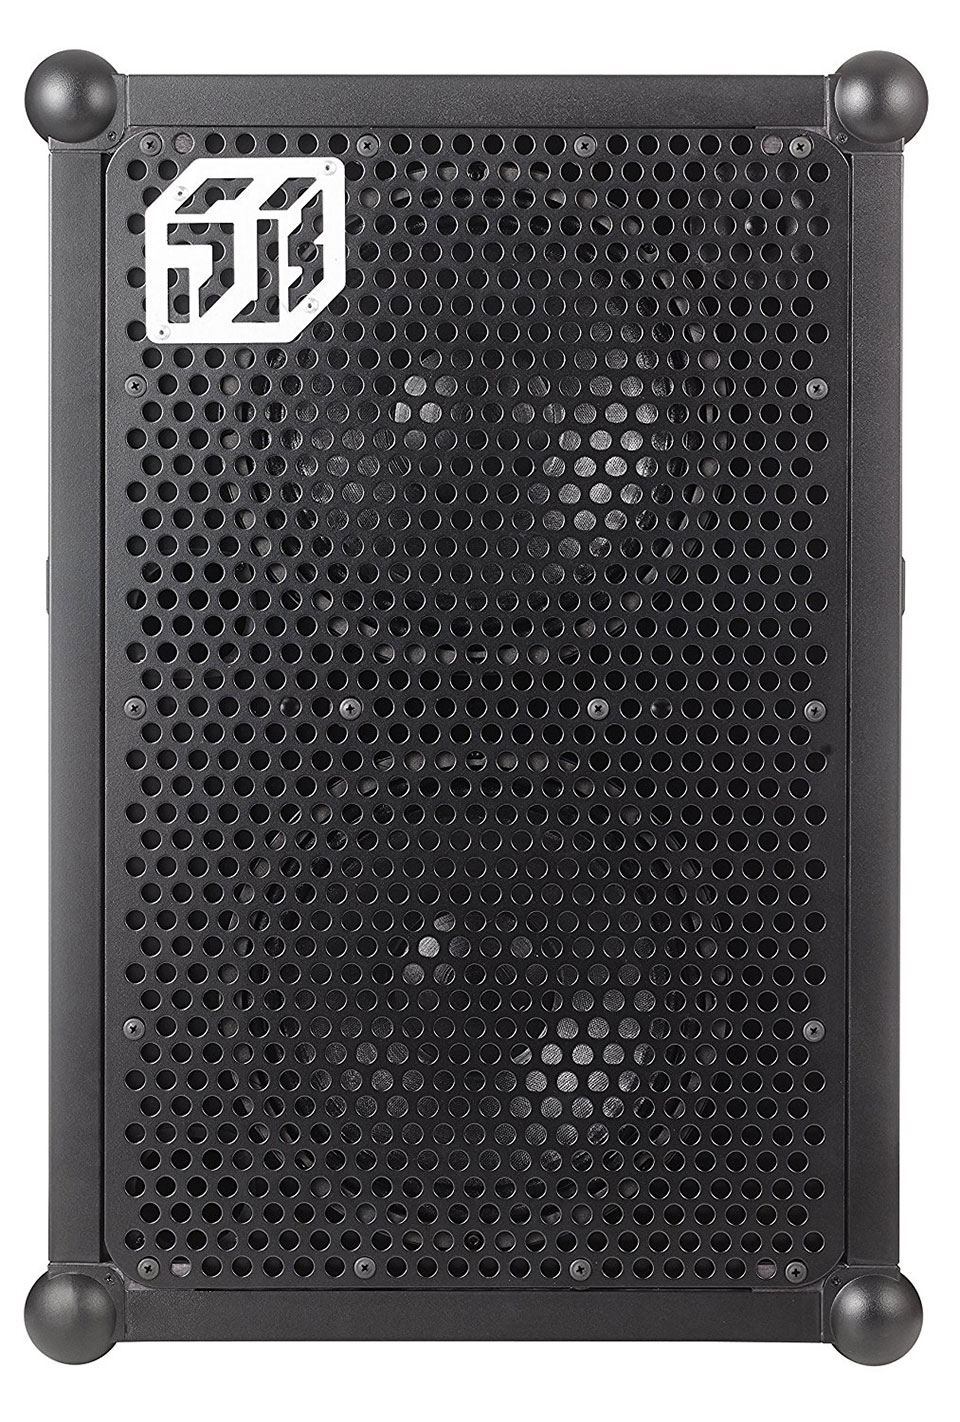 SoundBoks 2 Bluetooth Speaker